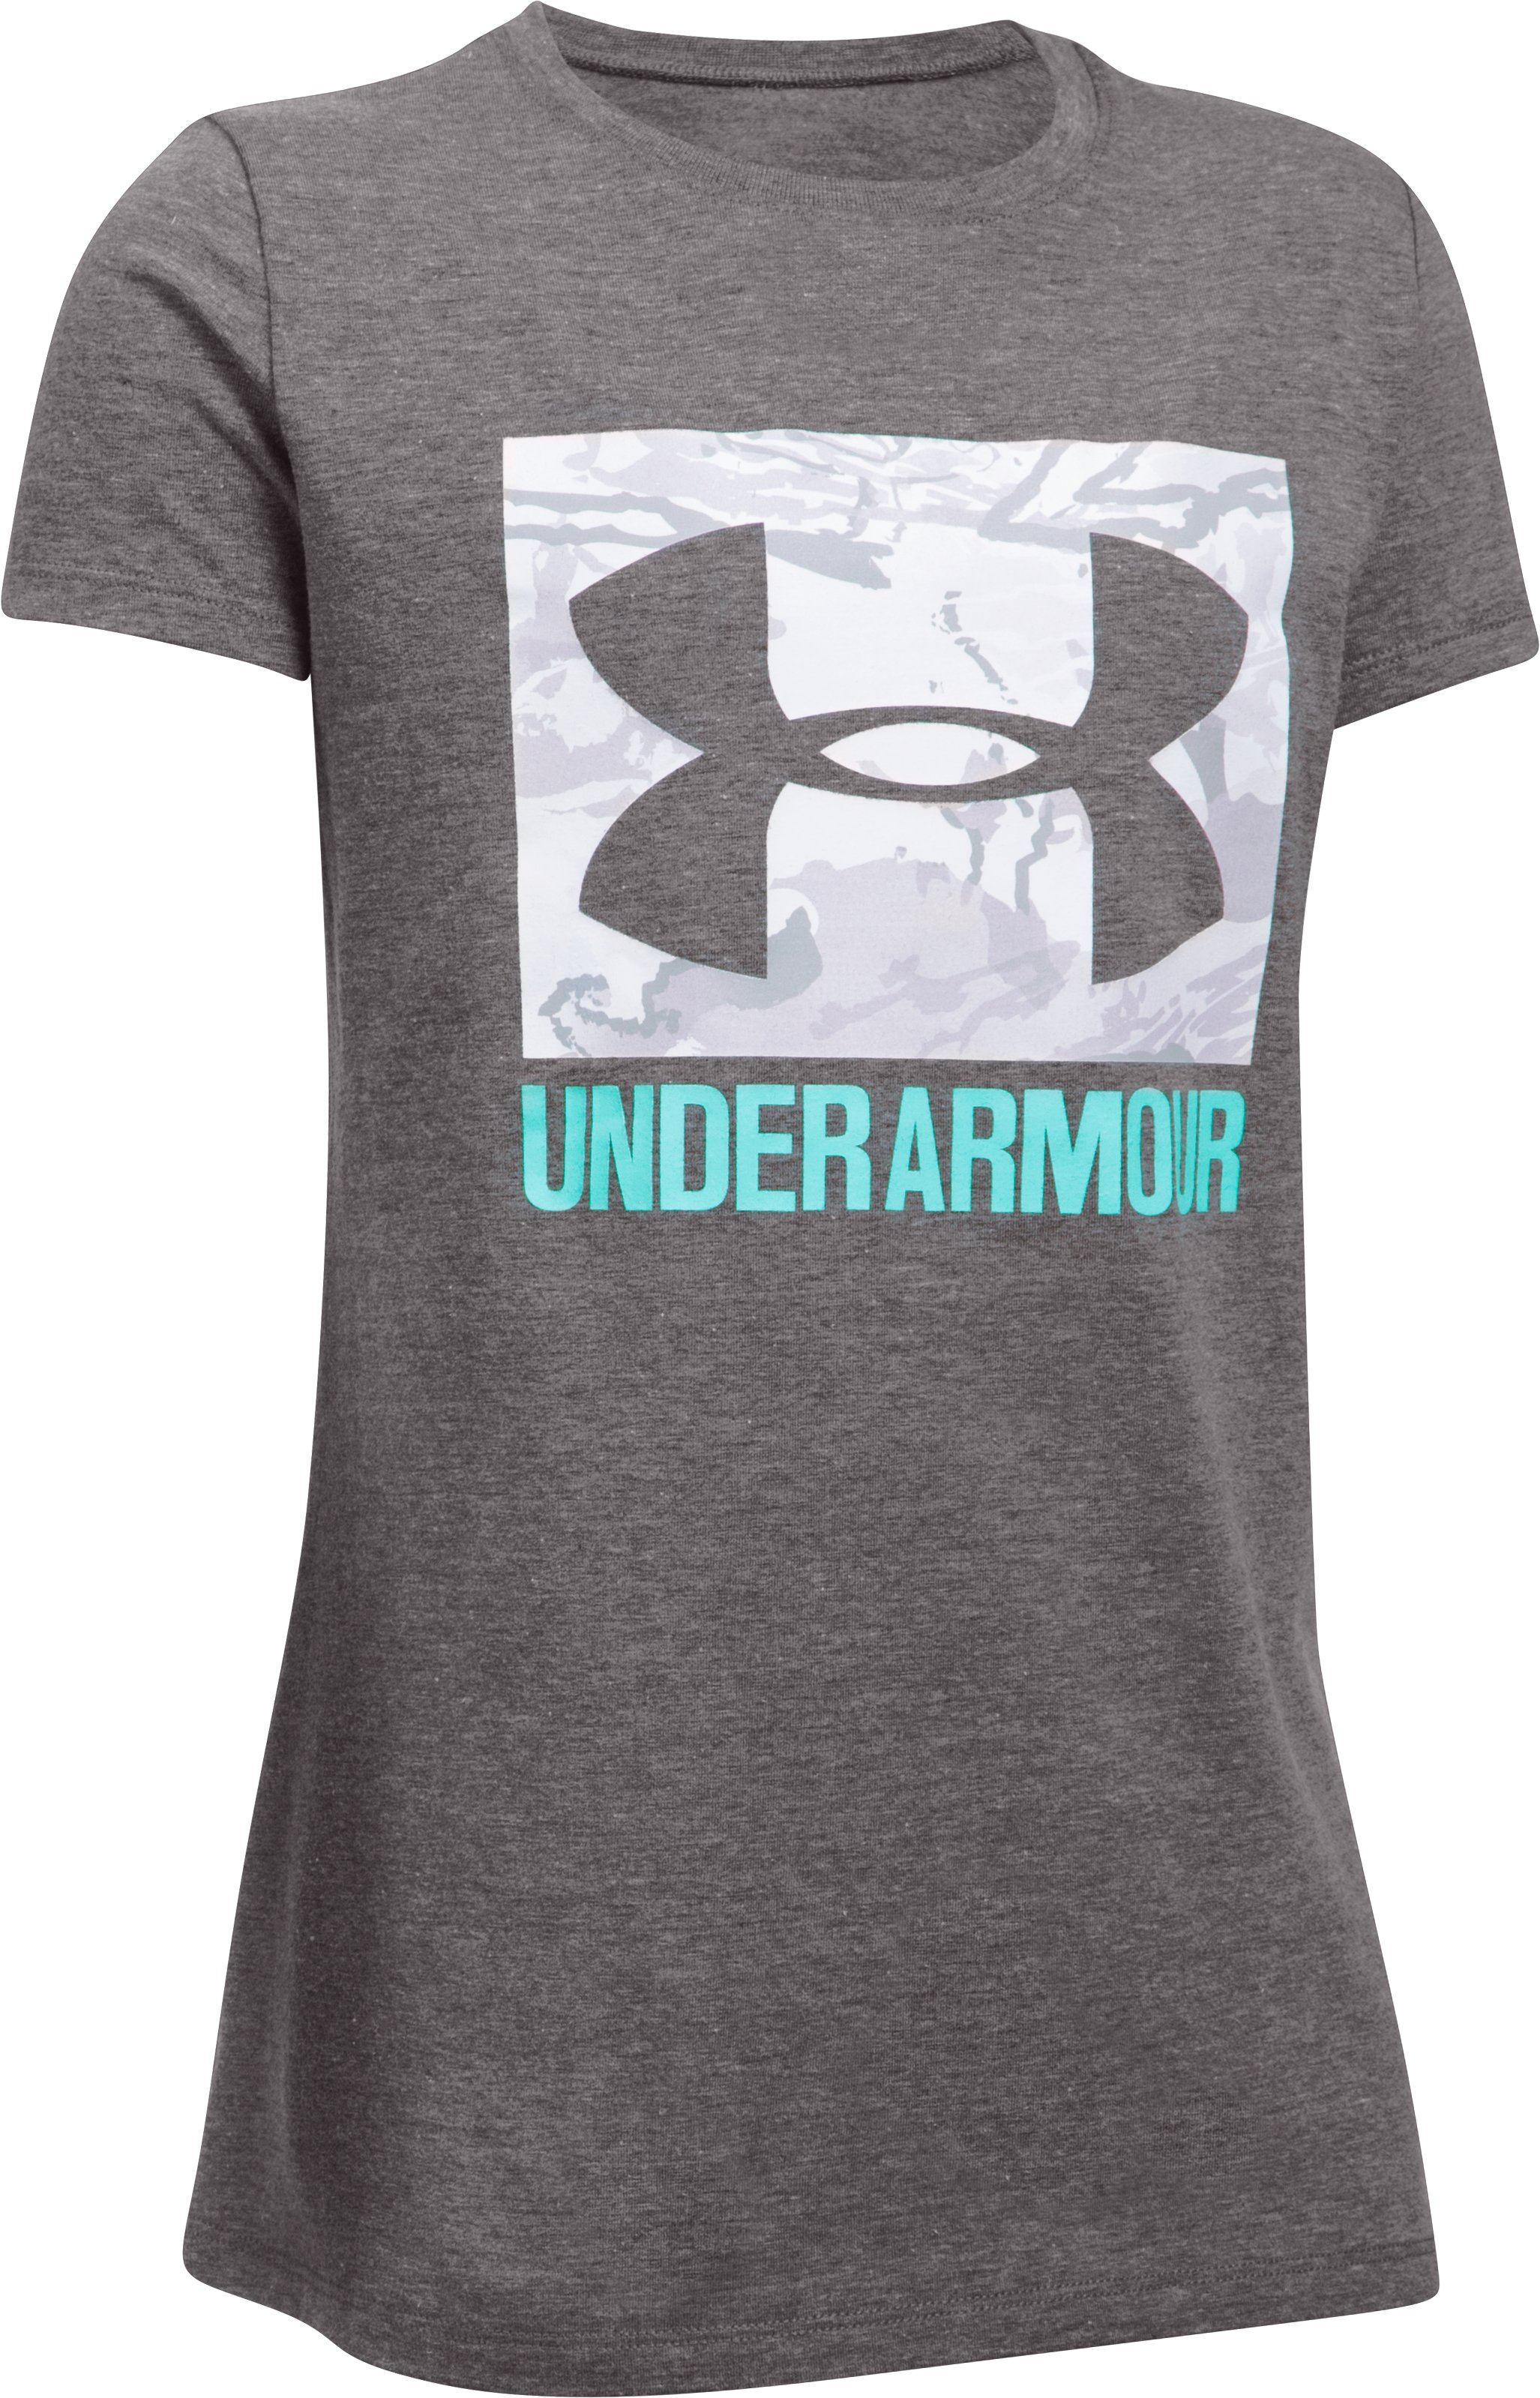 Girls' UA Camo Fill T-Shirt, CHARCOAL LIGHT HEATHER, undefined